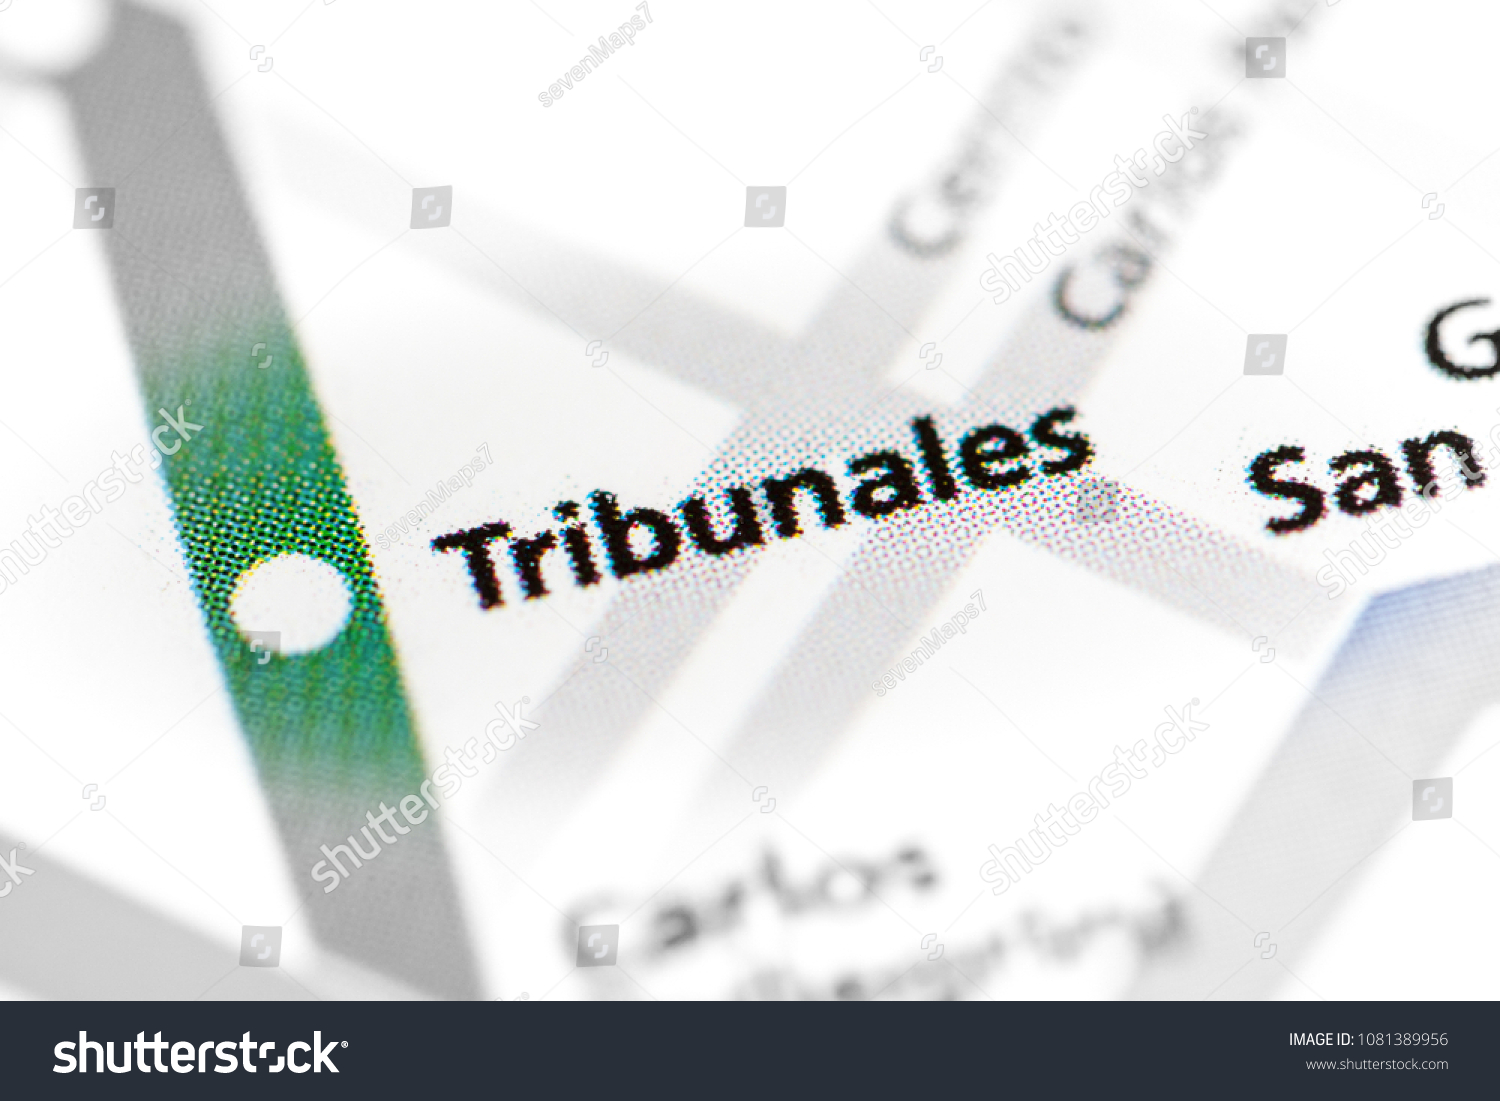 Subway Map Of Buesnos Aries Olleros Station.Tribunales Station Buenos Aires Metro Map Stock Photo Edit Now